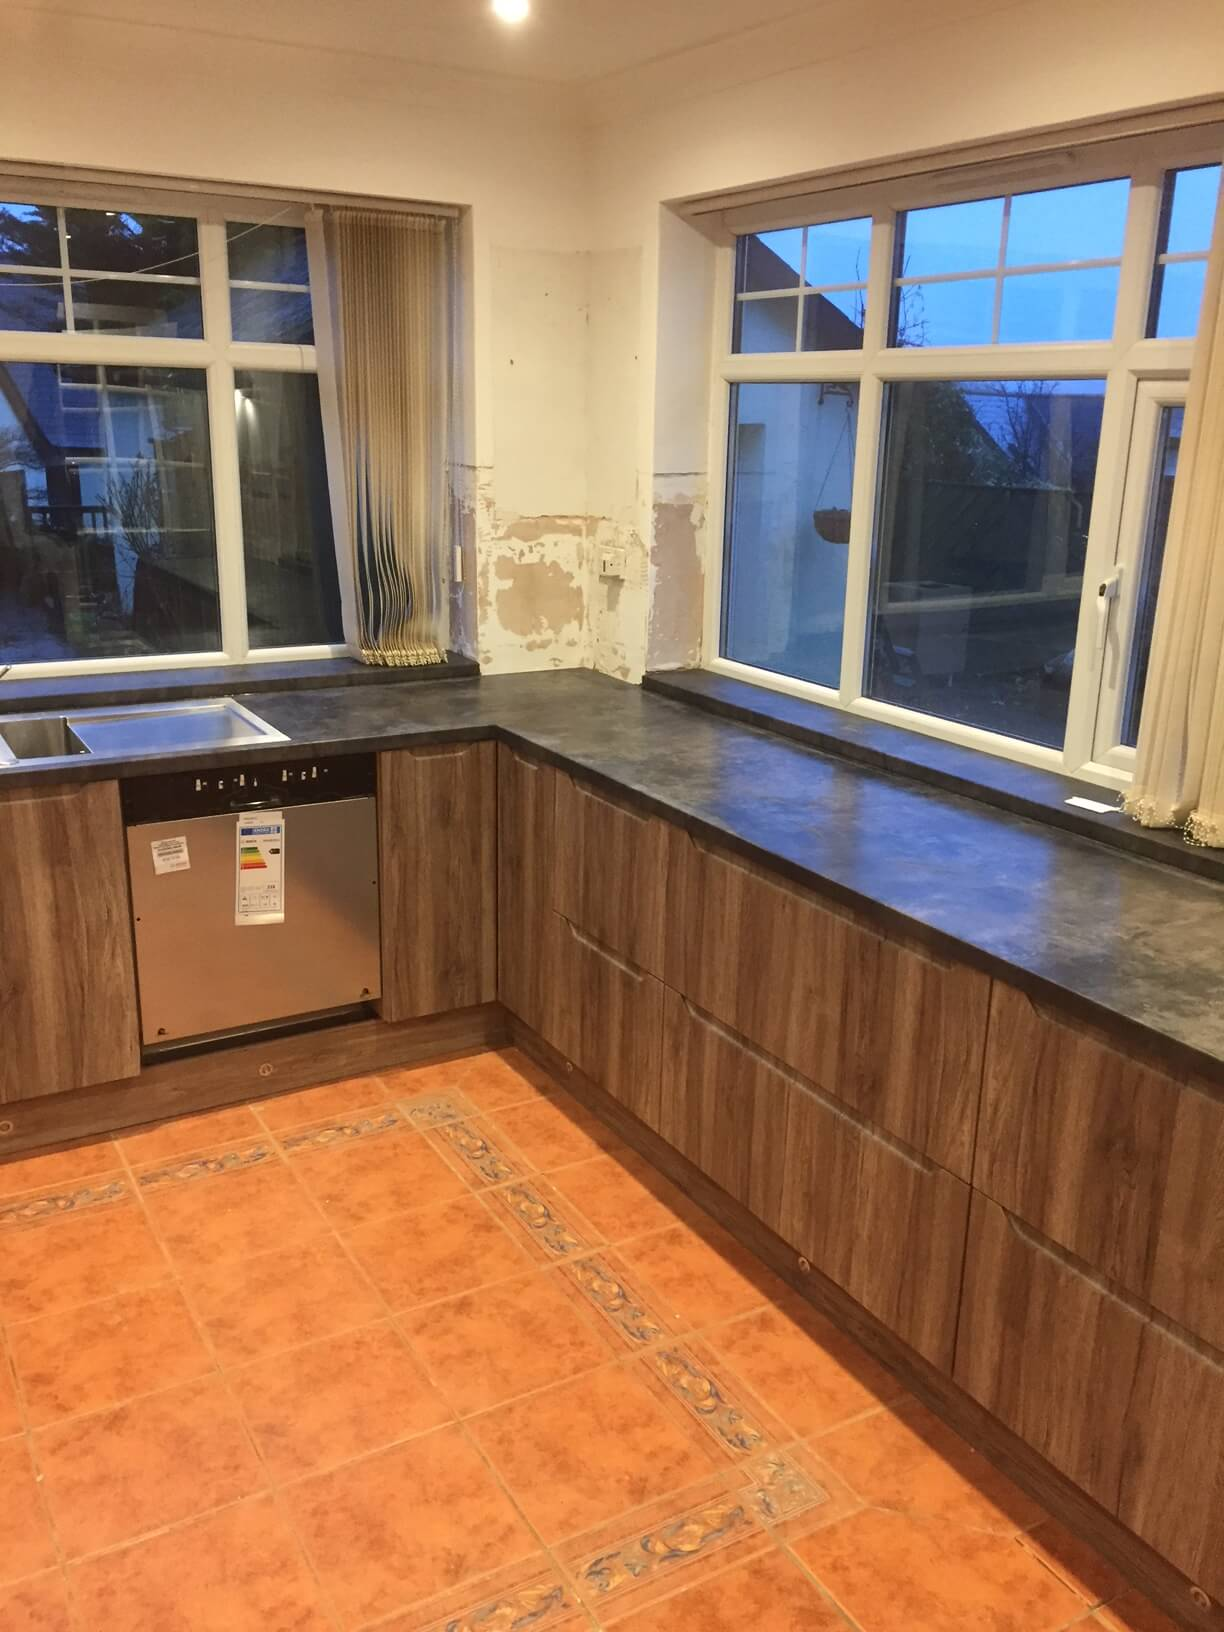 Worktop fitted as window cills